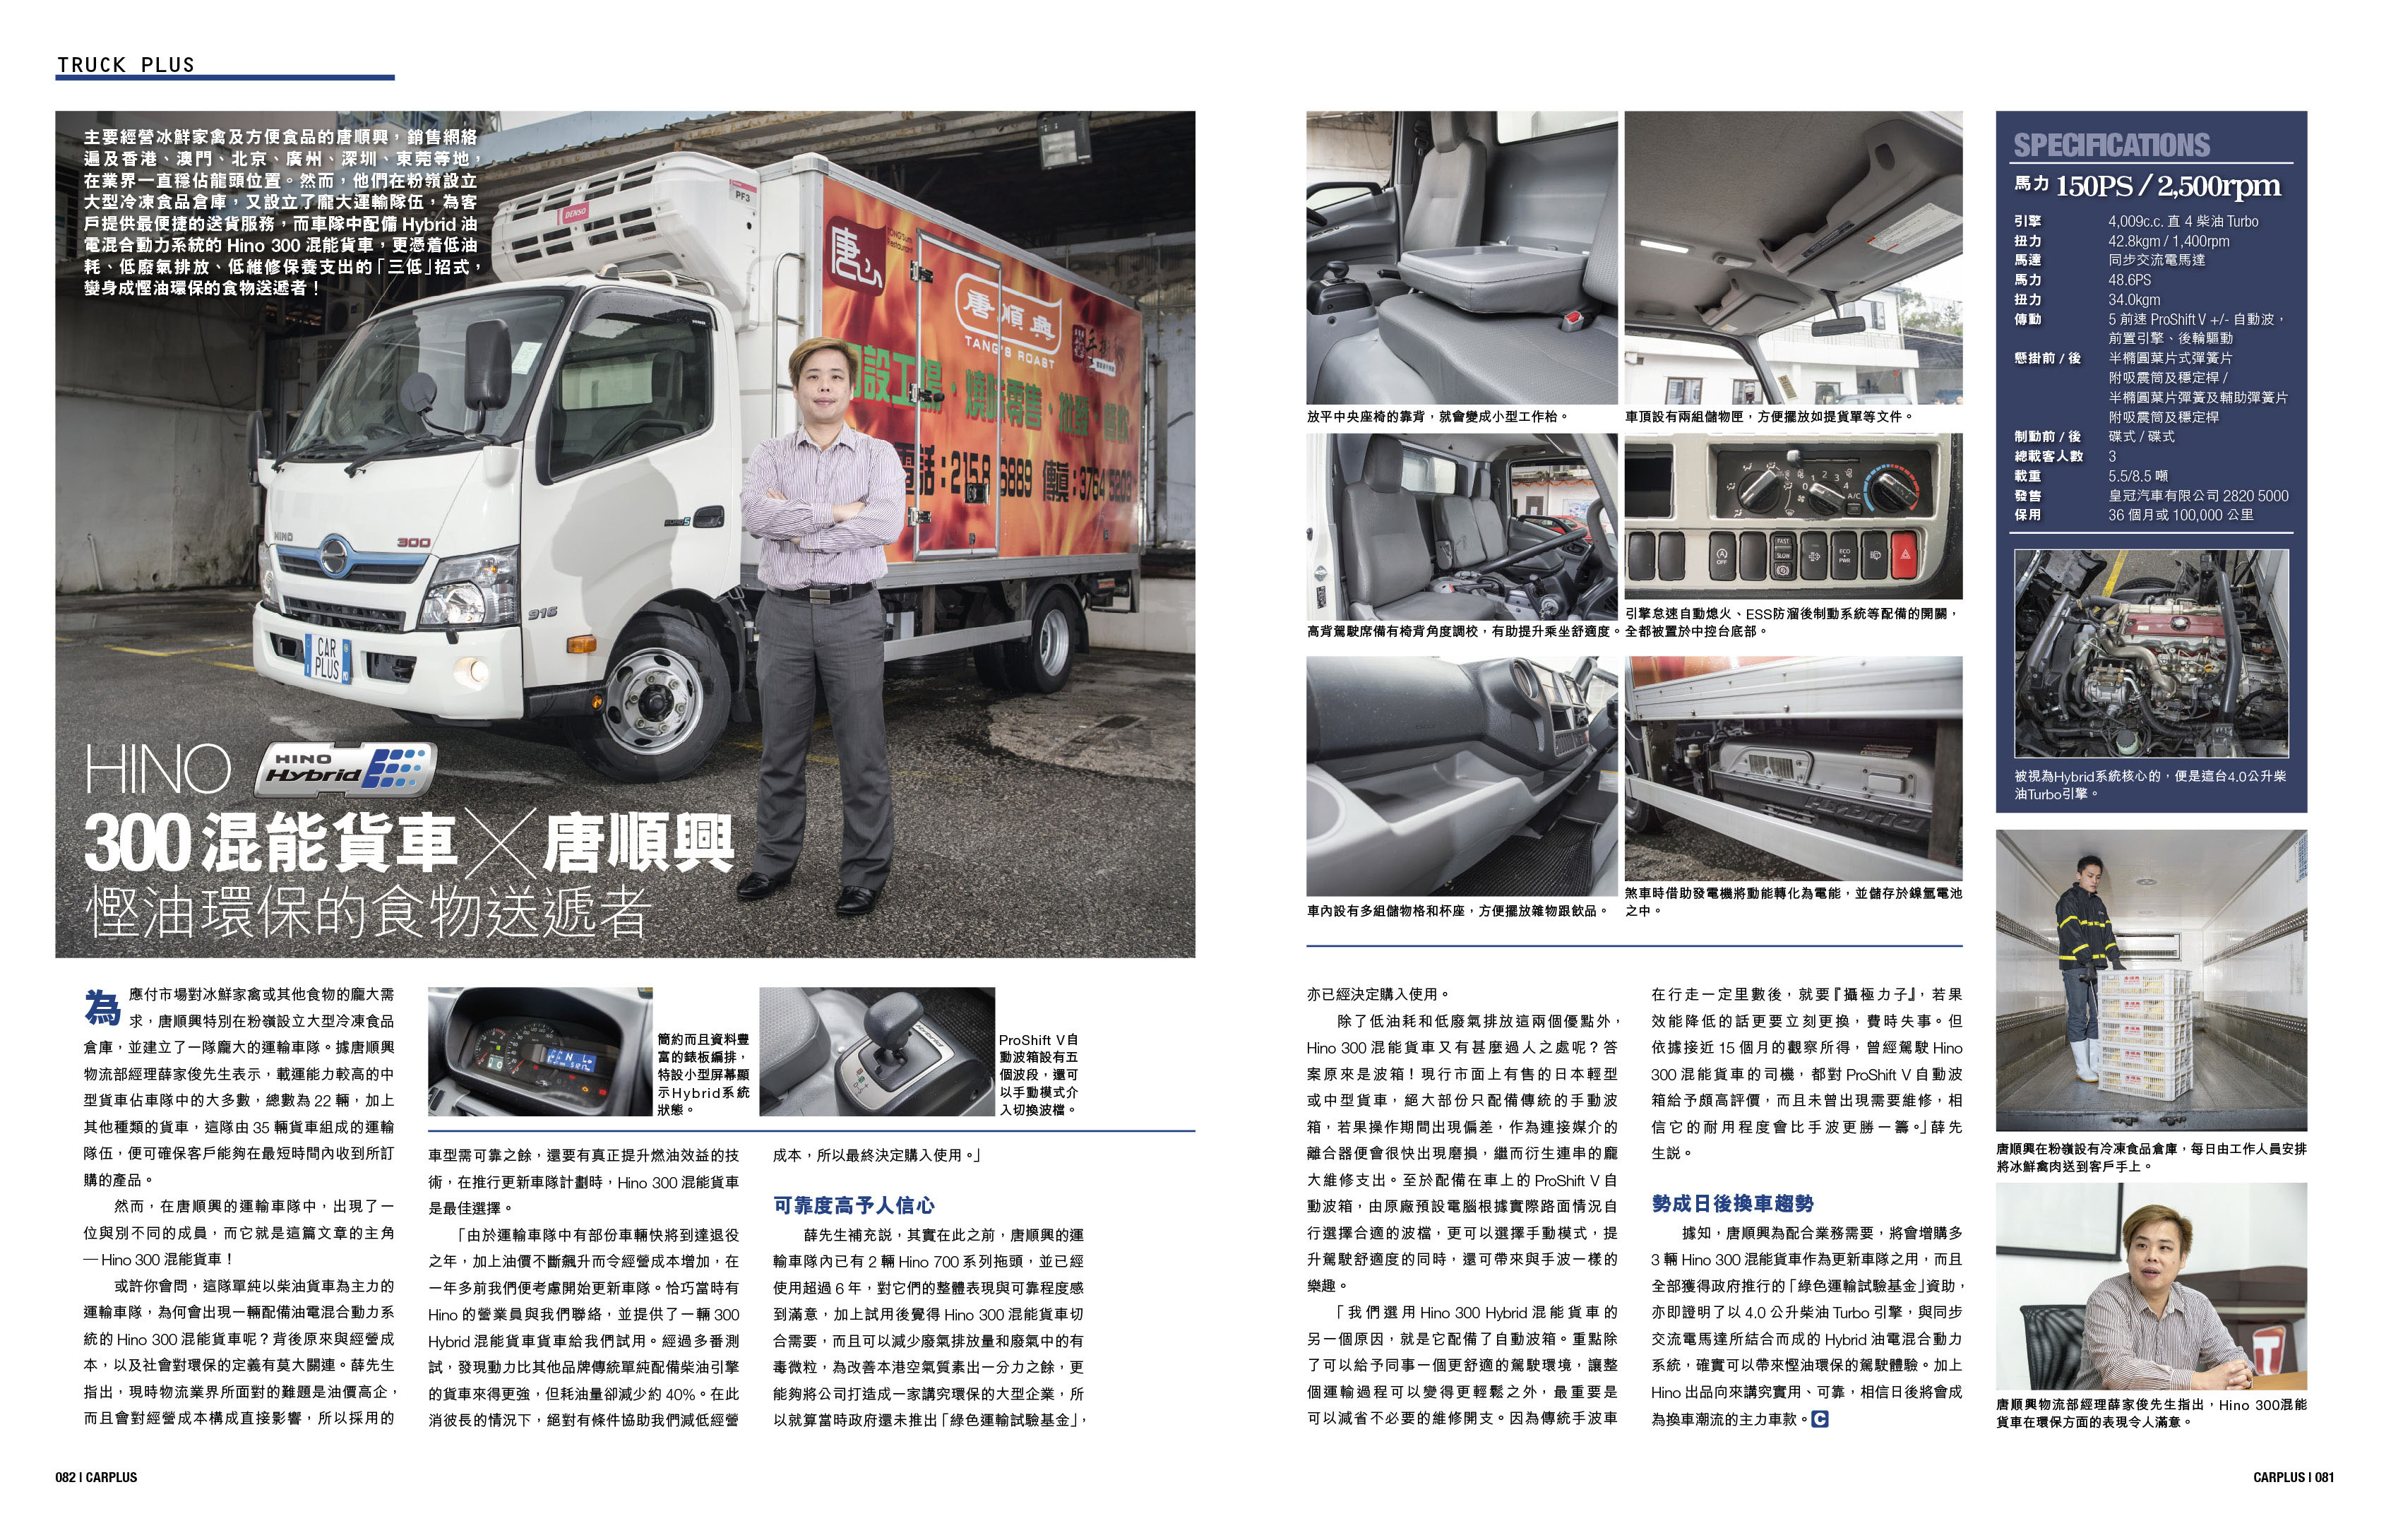 Fuel Efficient Food Transporter - Hino 300 Hybrid x Tong Shun Hing